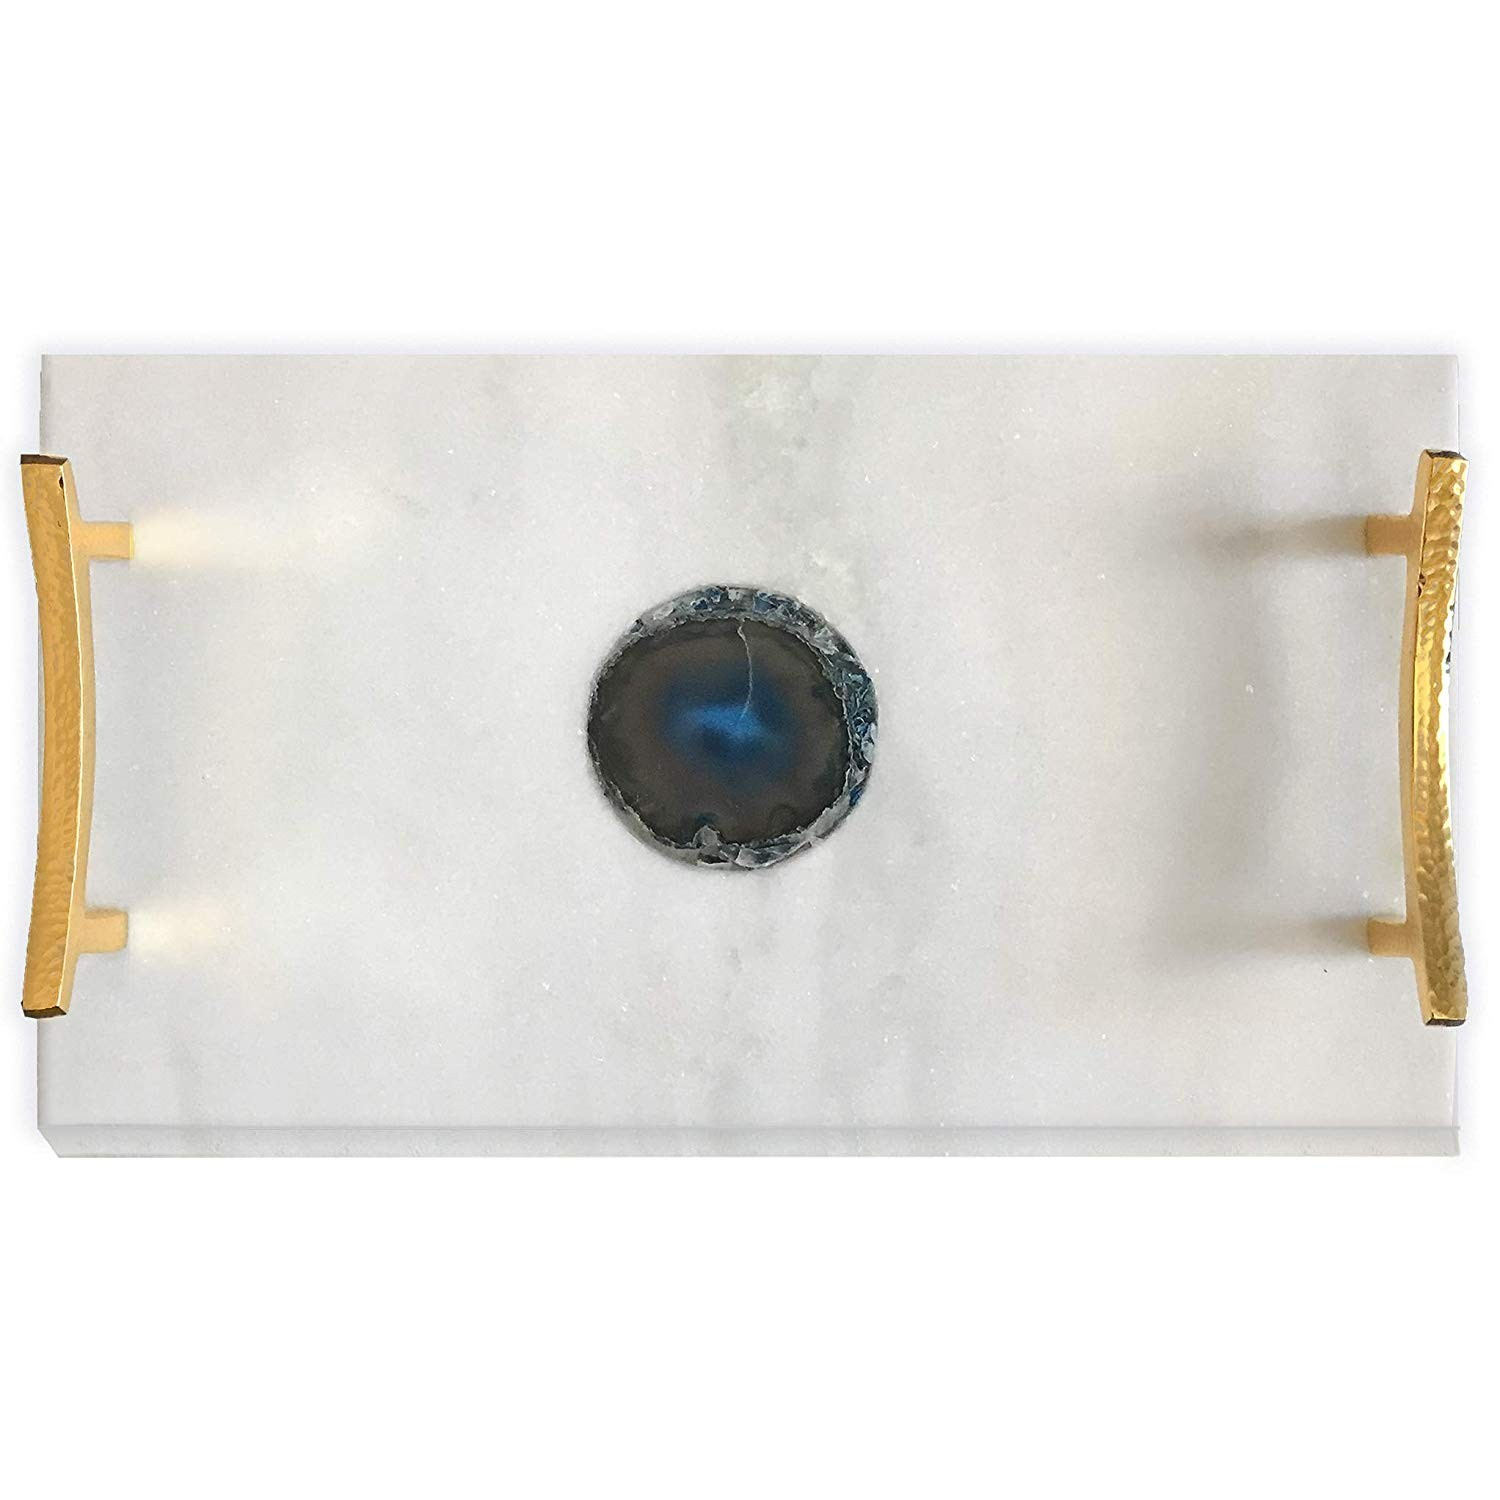 Decorshore Luxe Designs Decorative Genuine Marble Tray In White With Authentic Blue Agate Slice 16x9 And Shiny Gold Finish Handles Large Size Decorshore